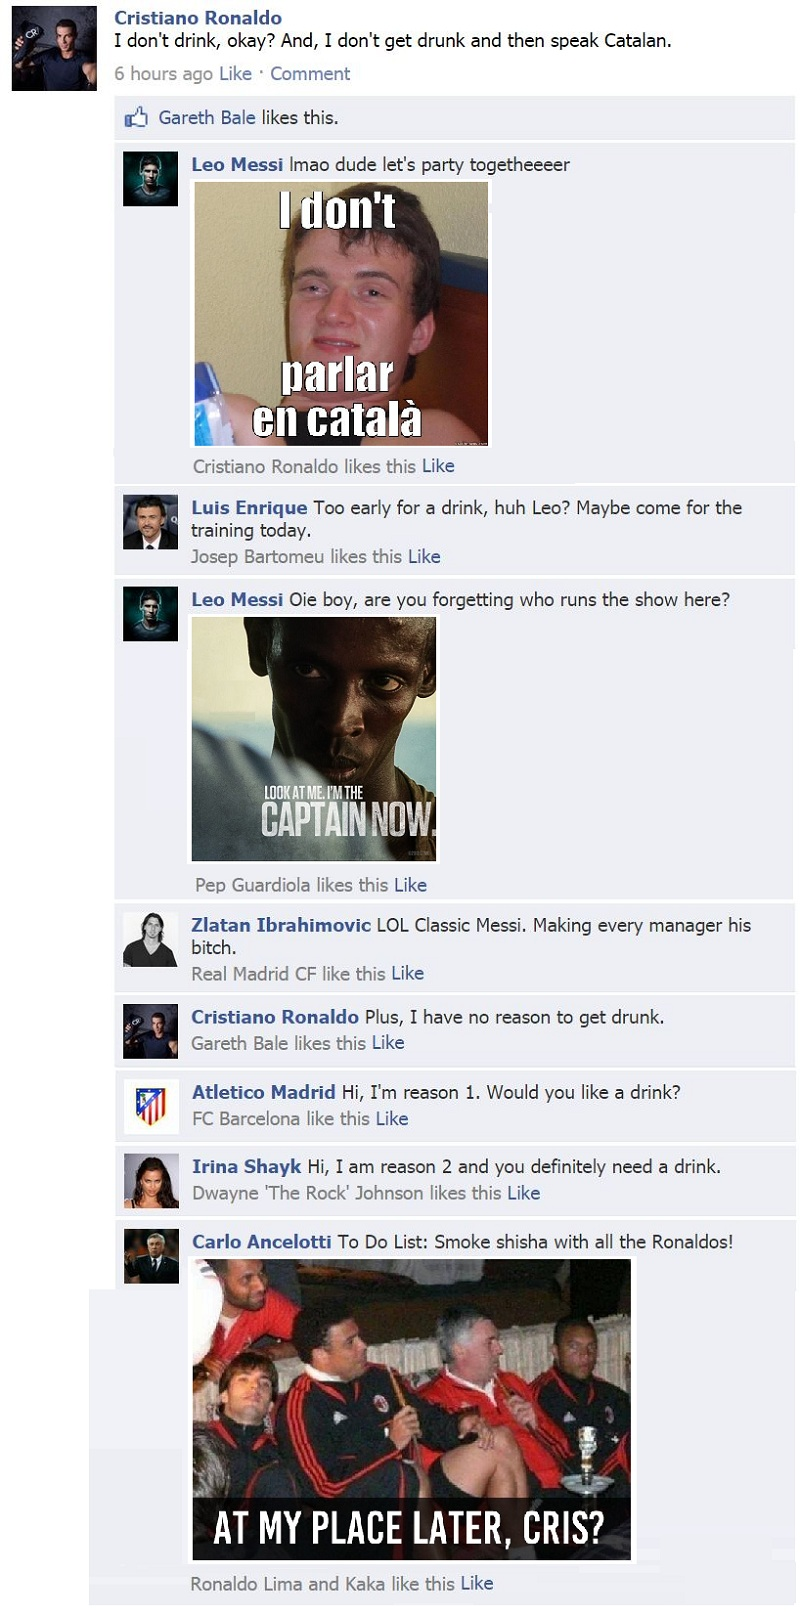 FB Wall: Cristiano Ronaldo has two reasons to drink, but should he?